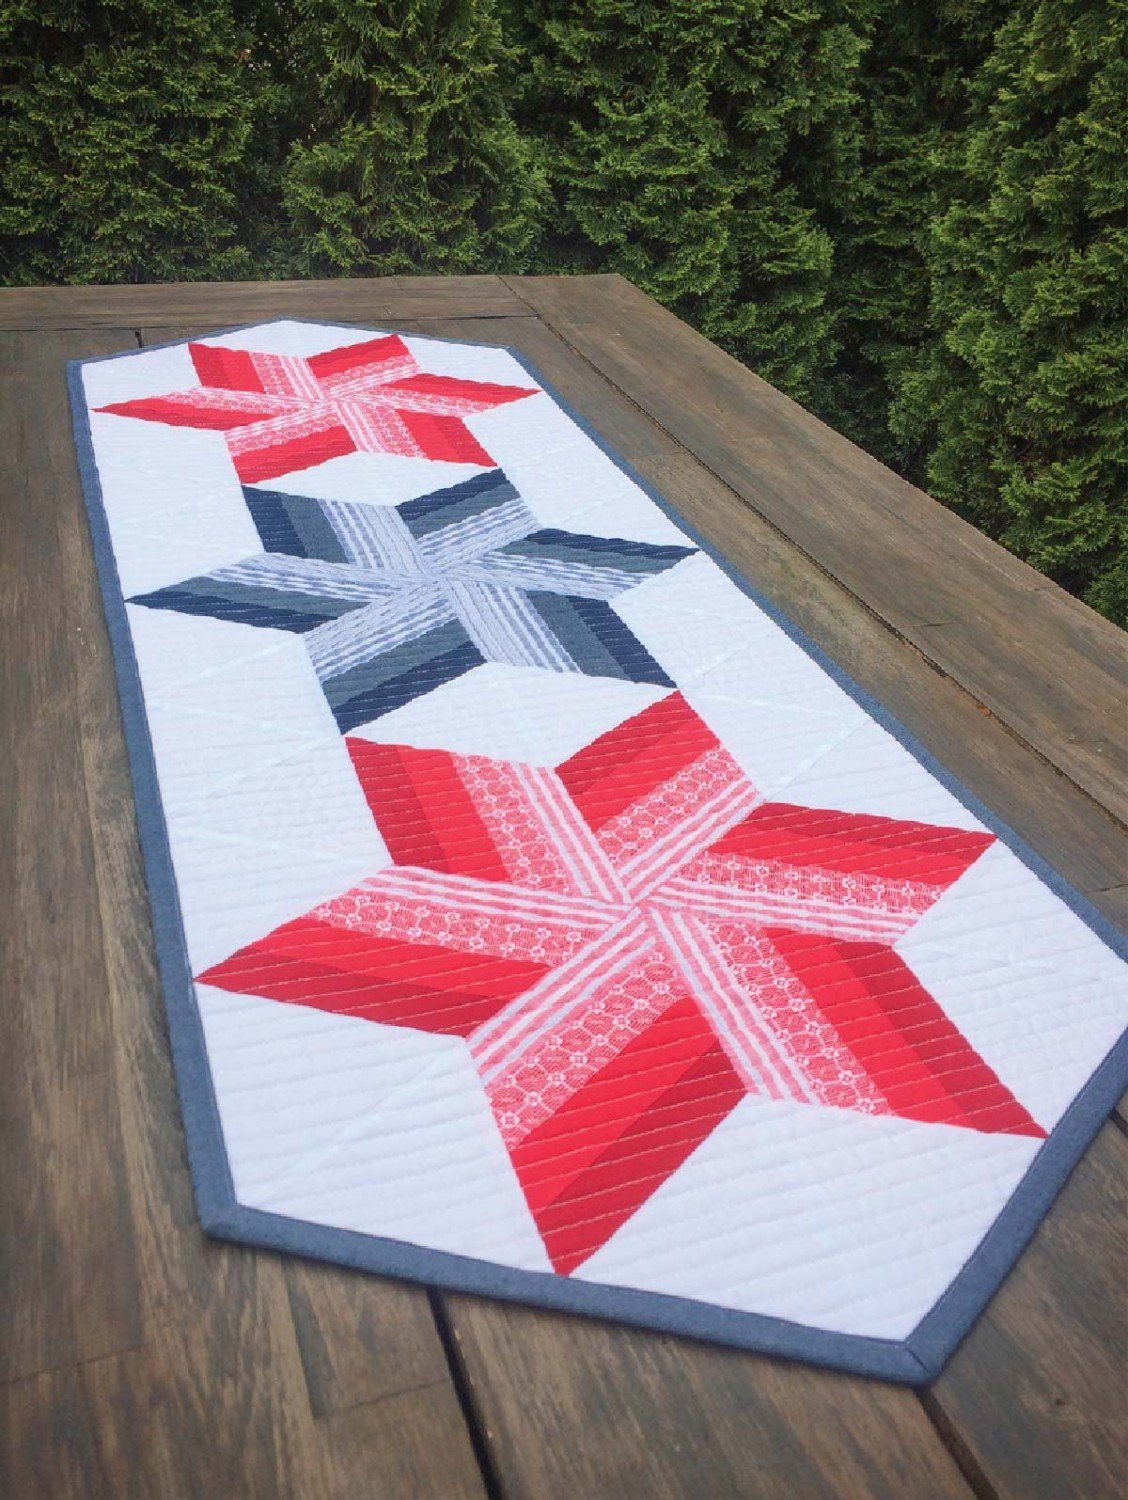 Twirl N Spin Table Runner - Cut Loose - CLPKMS004